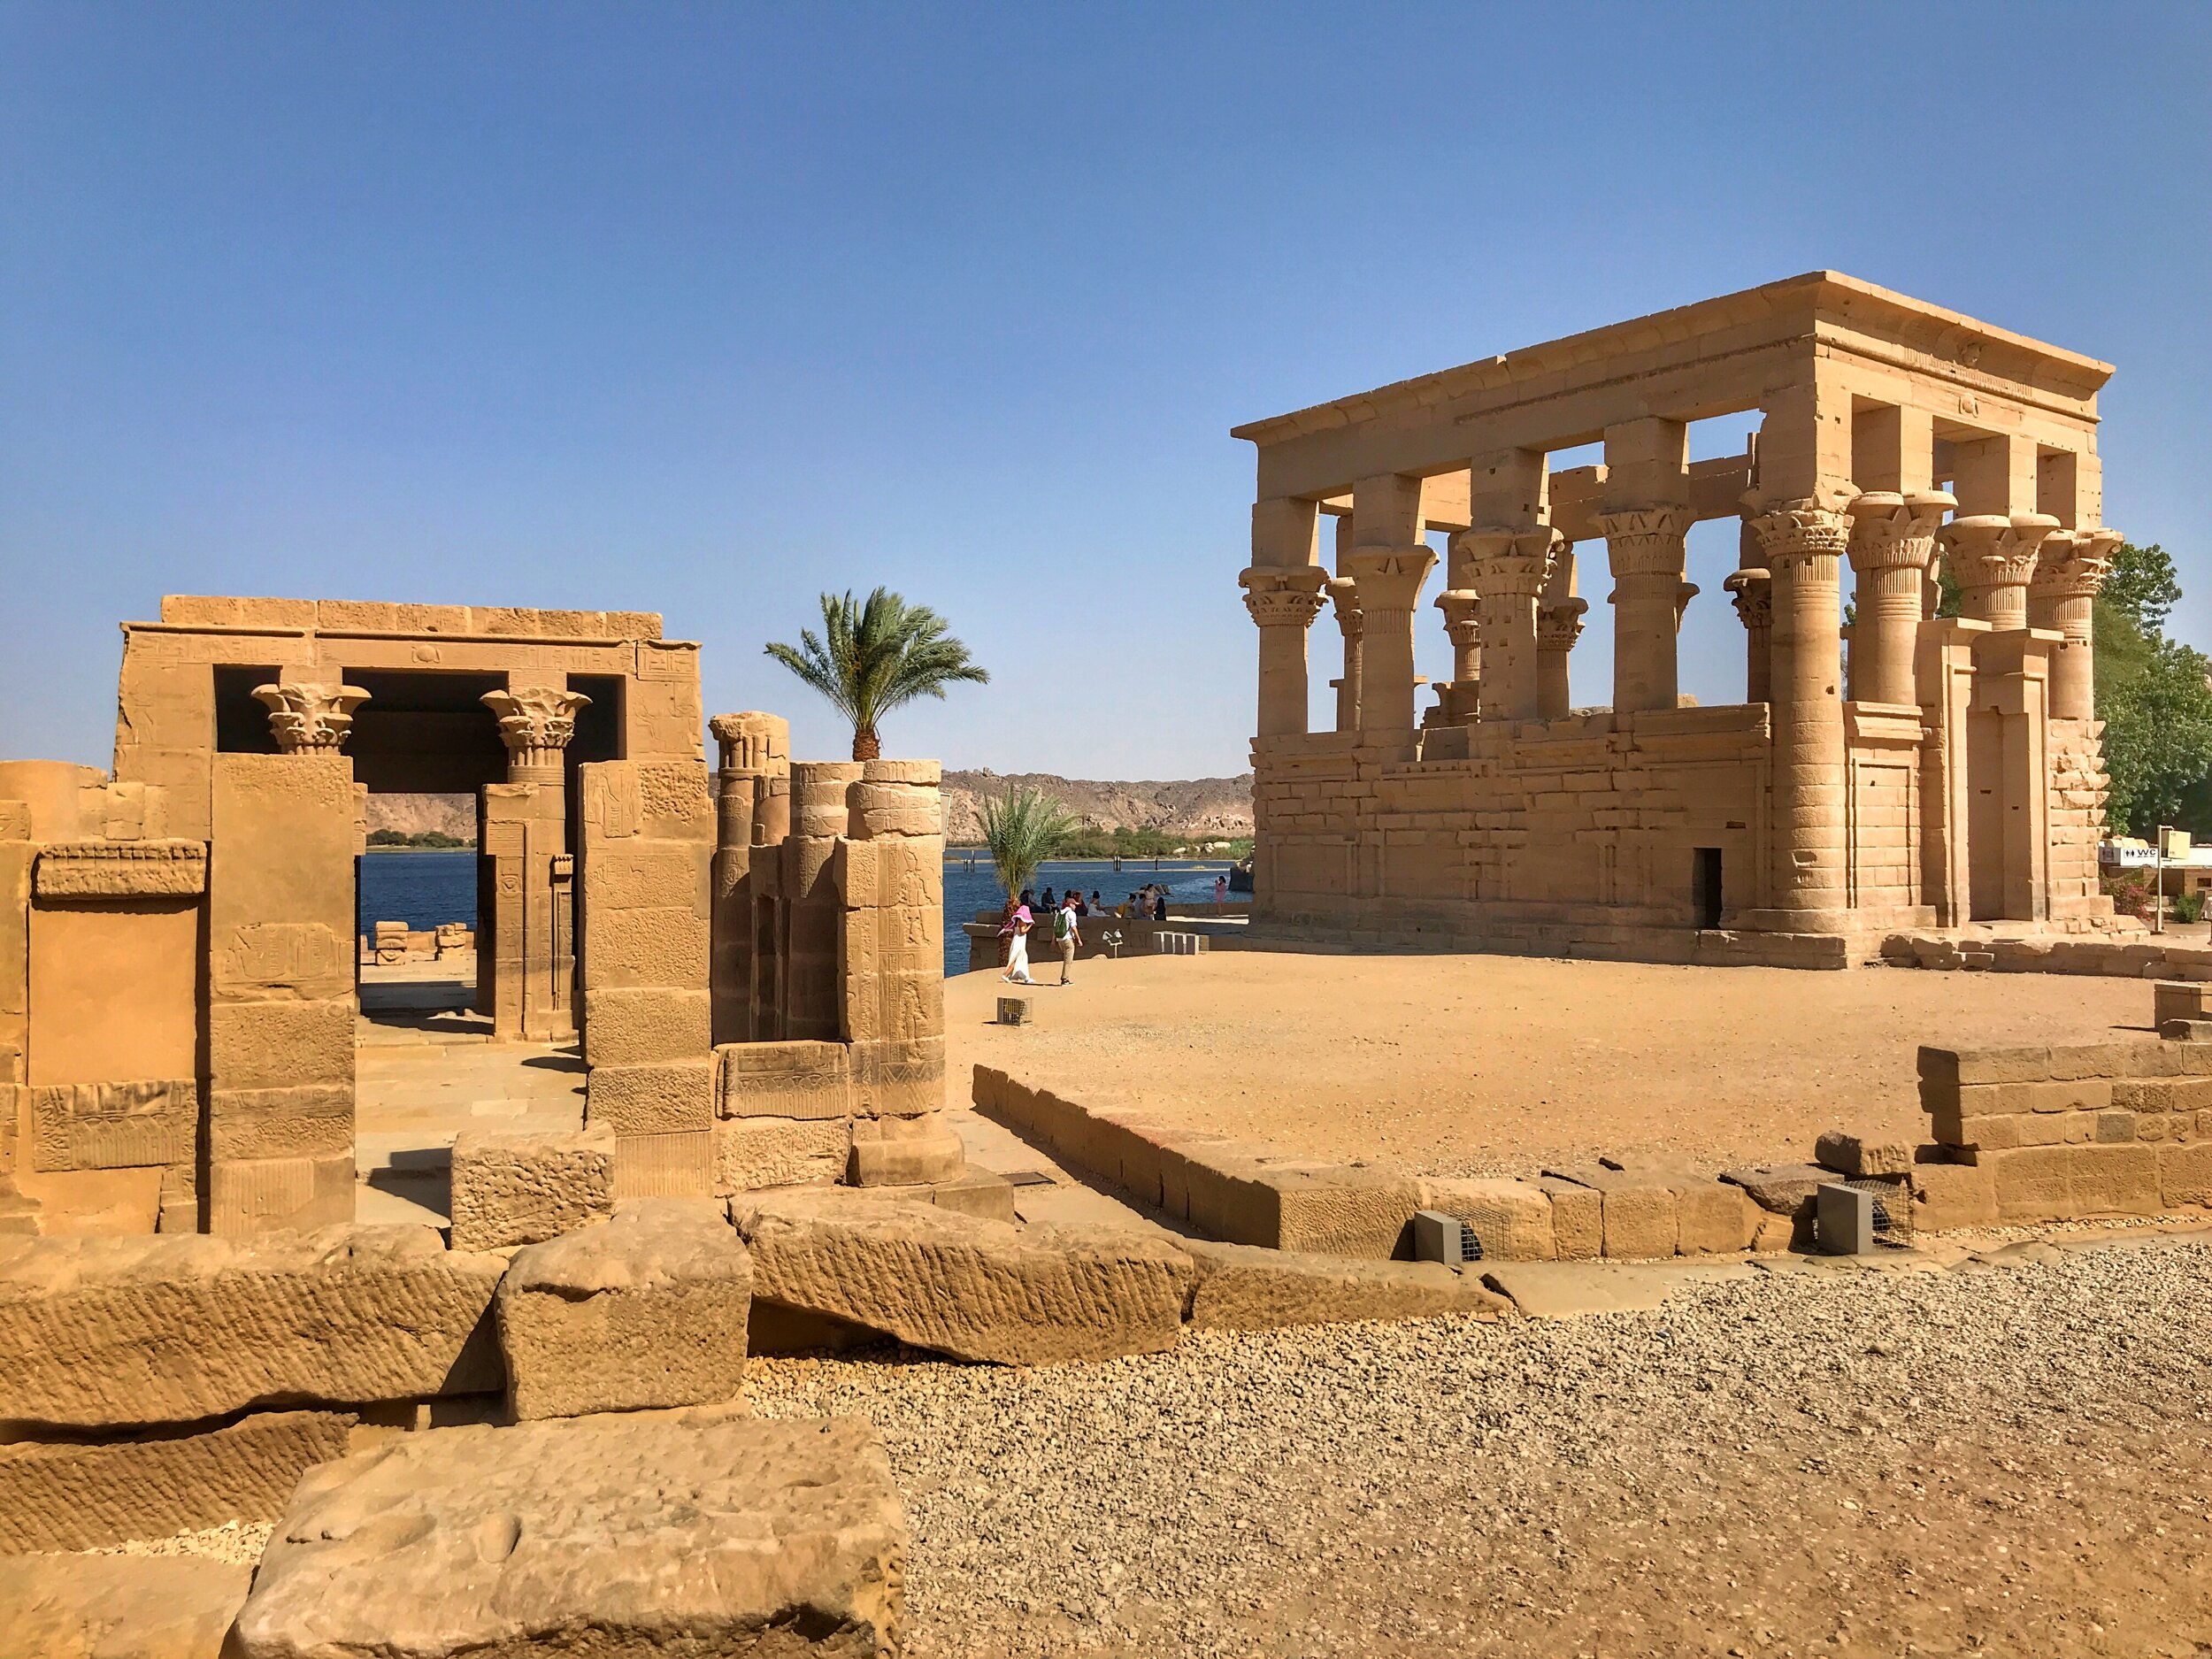 Take a walk around the small island to see the other buildings apart from the temple to Isis